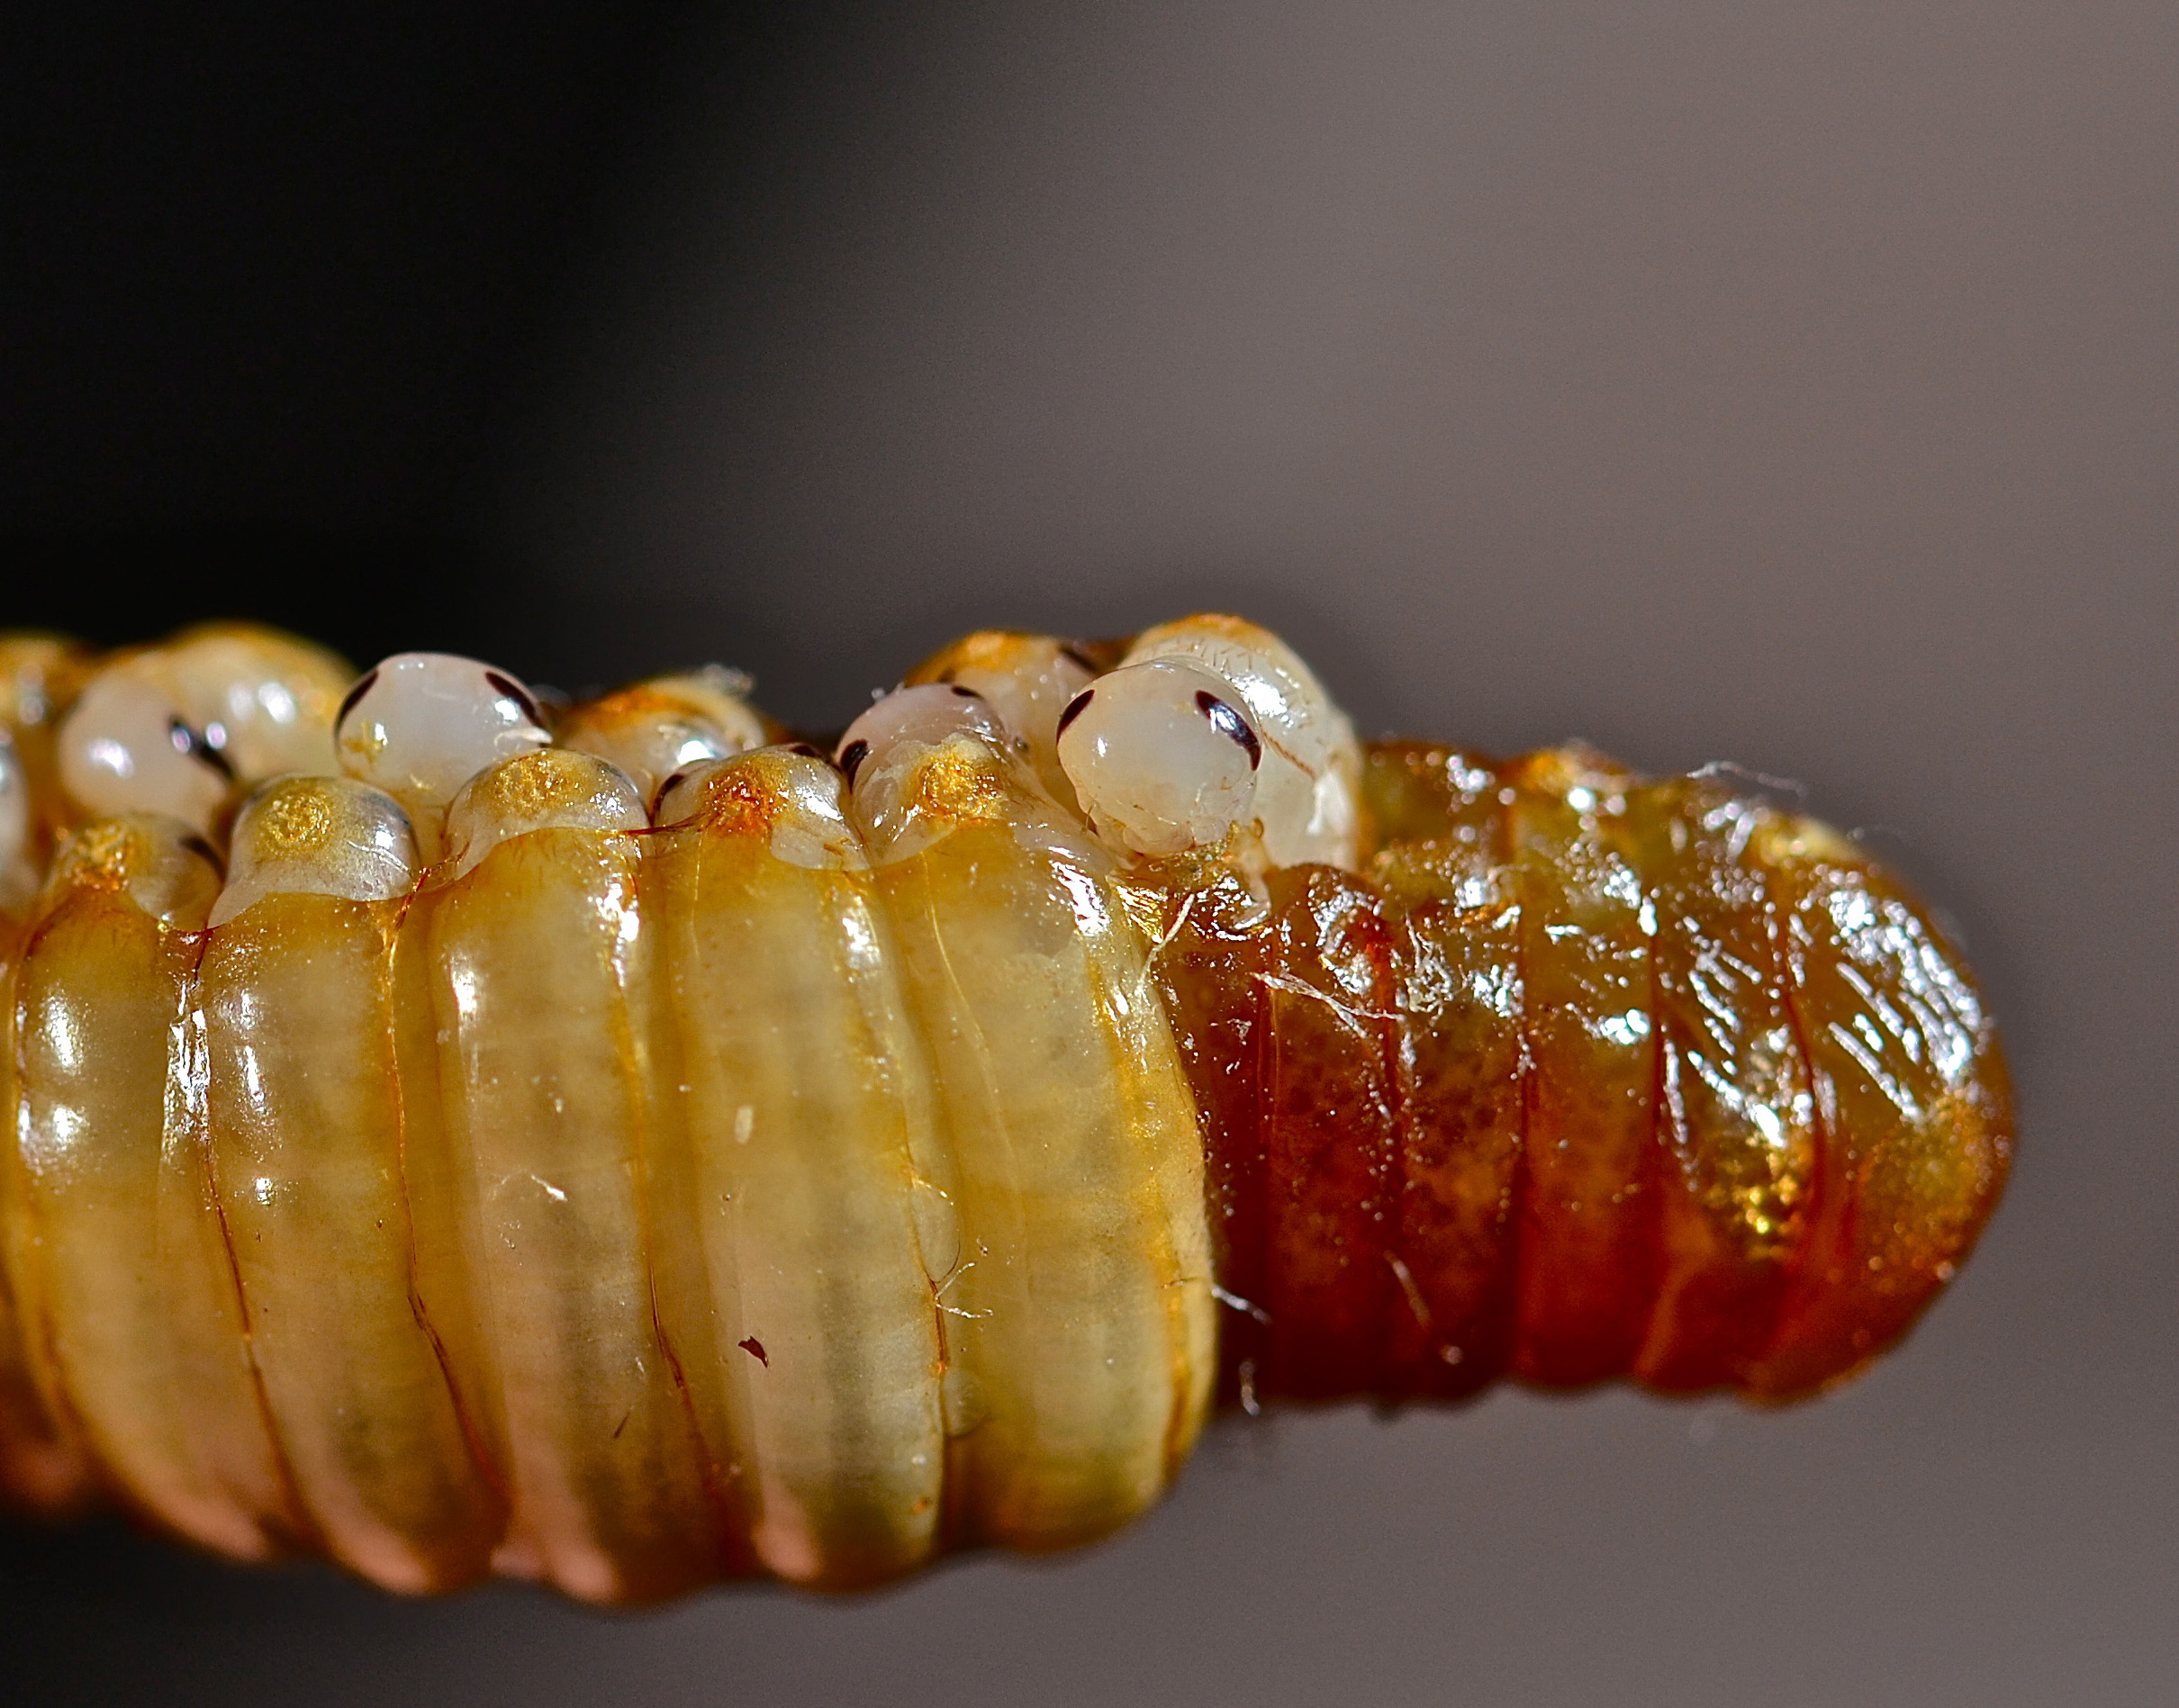 Cockroach eggs hatching